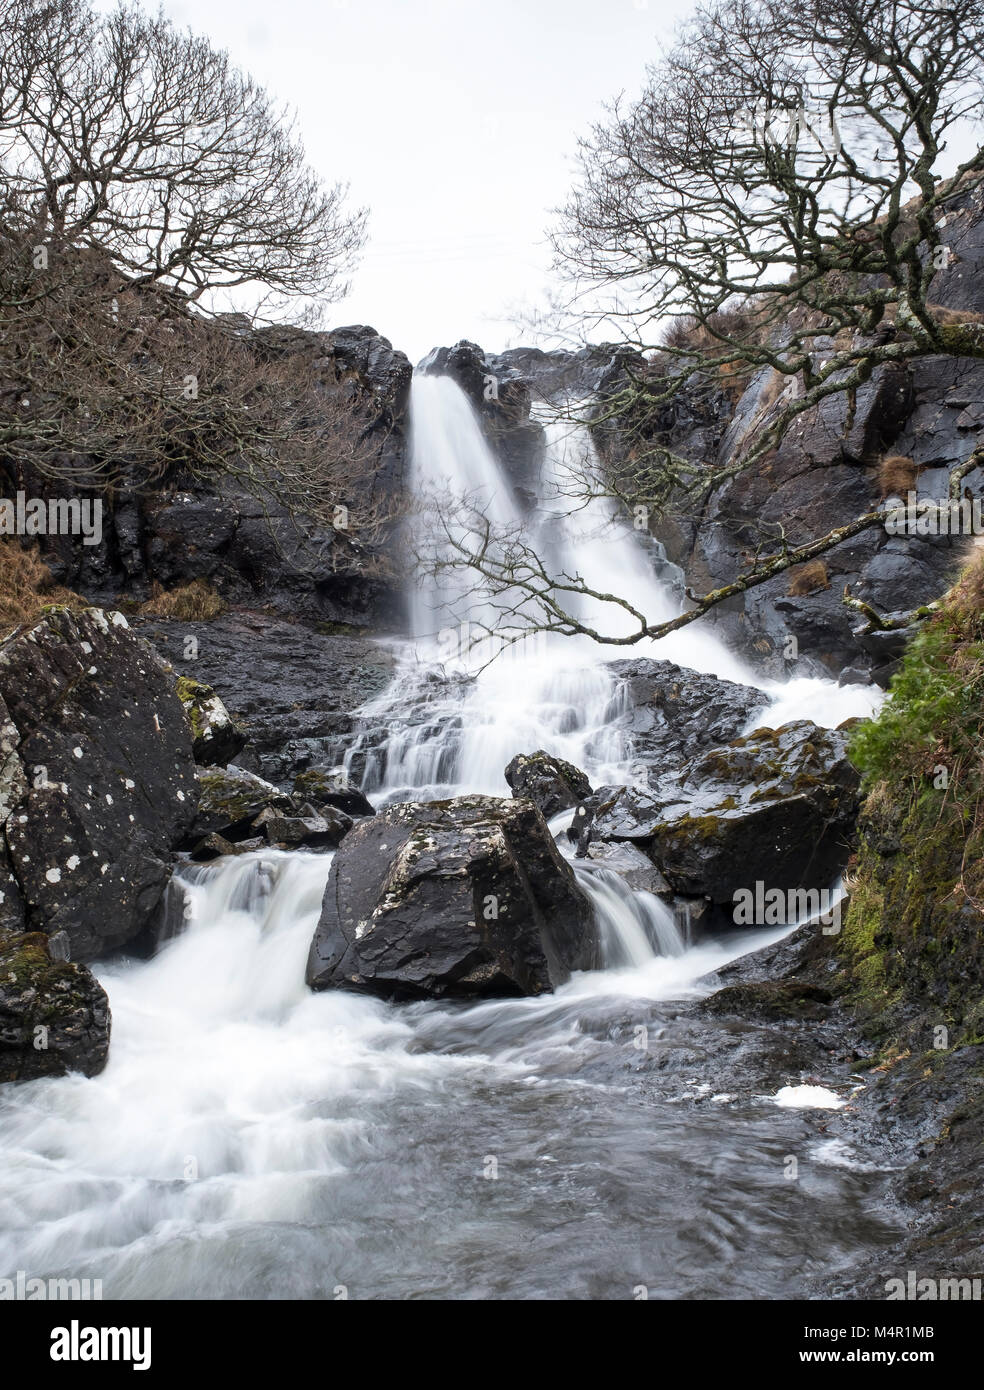 Eas Fors waterfall on river Allt an Eas Fors. Isle of Mull, Argyll and Bute Inner Hebrides, Scotland. - Stock Image